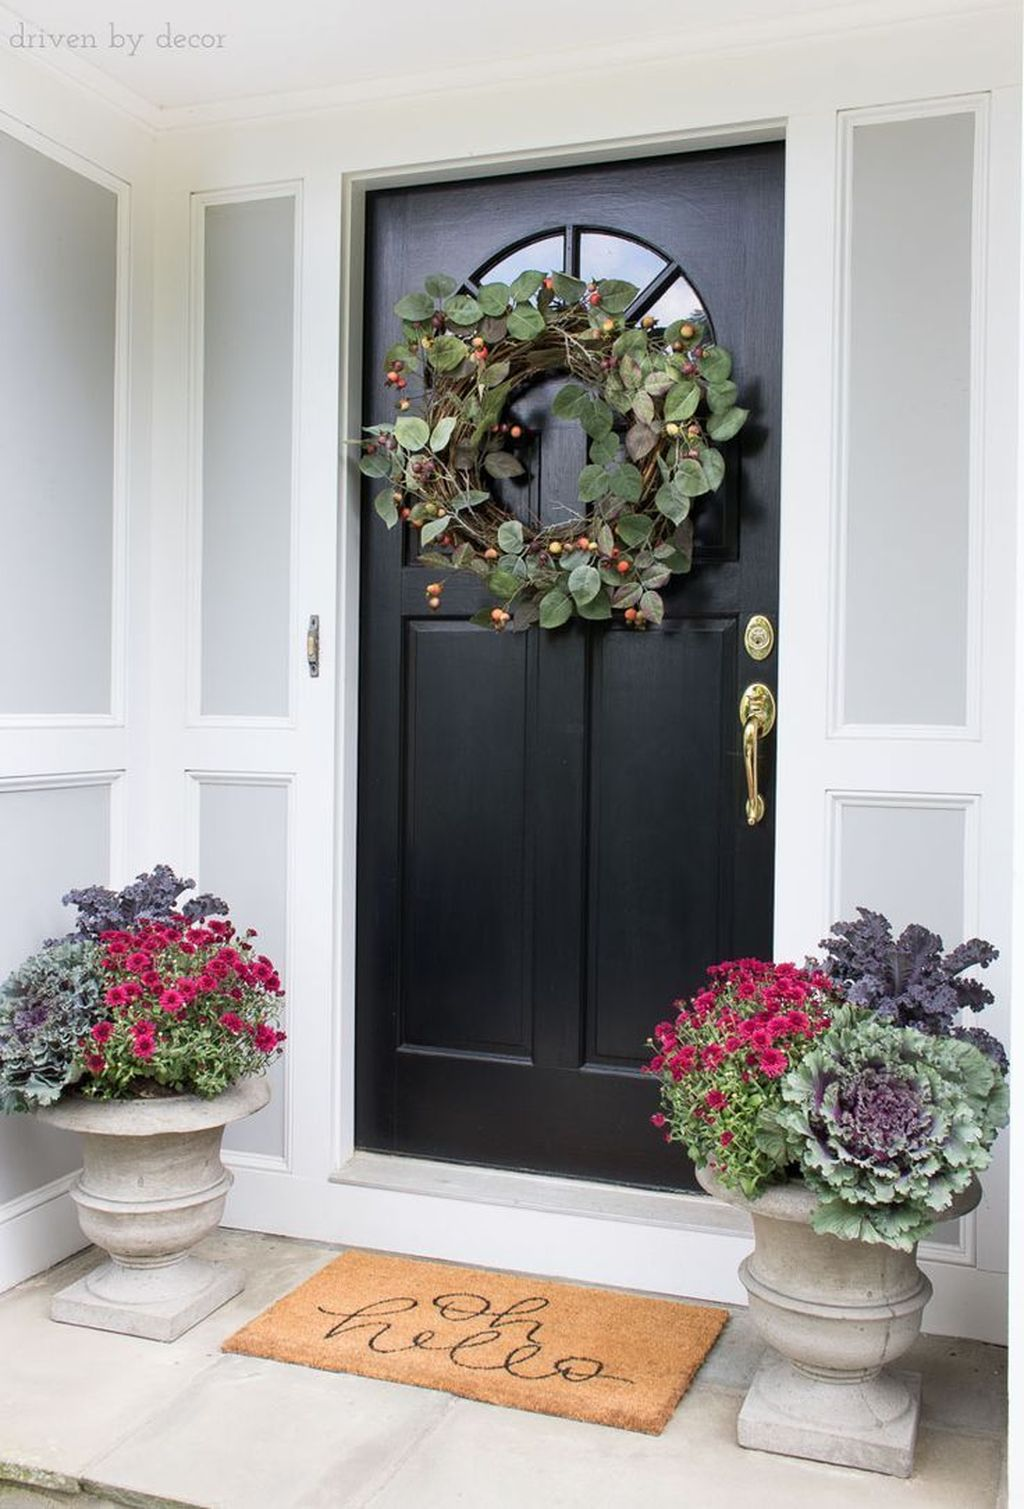 Amazing Fall Planter Ideas Best For Front Porches 14